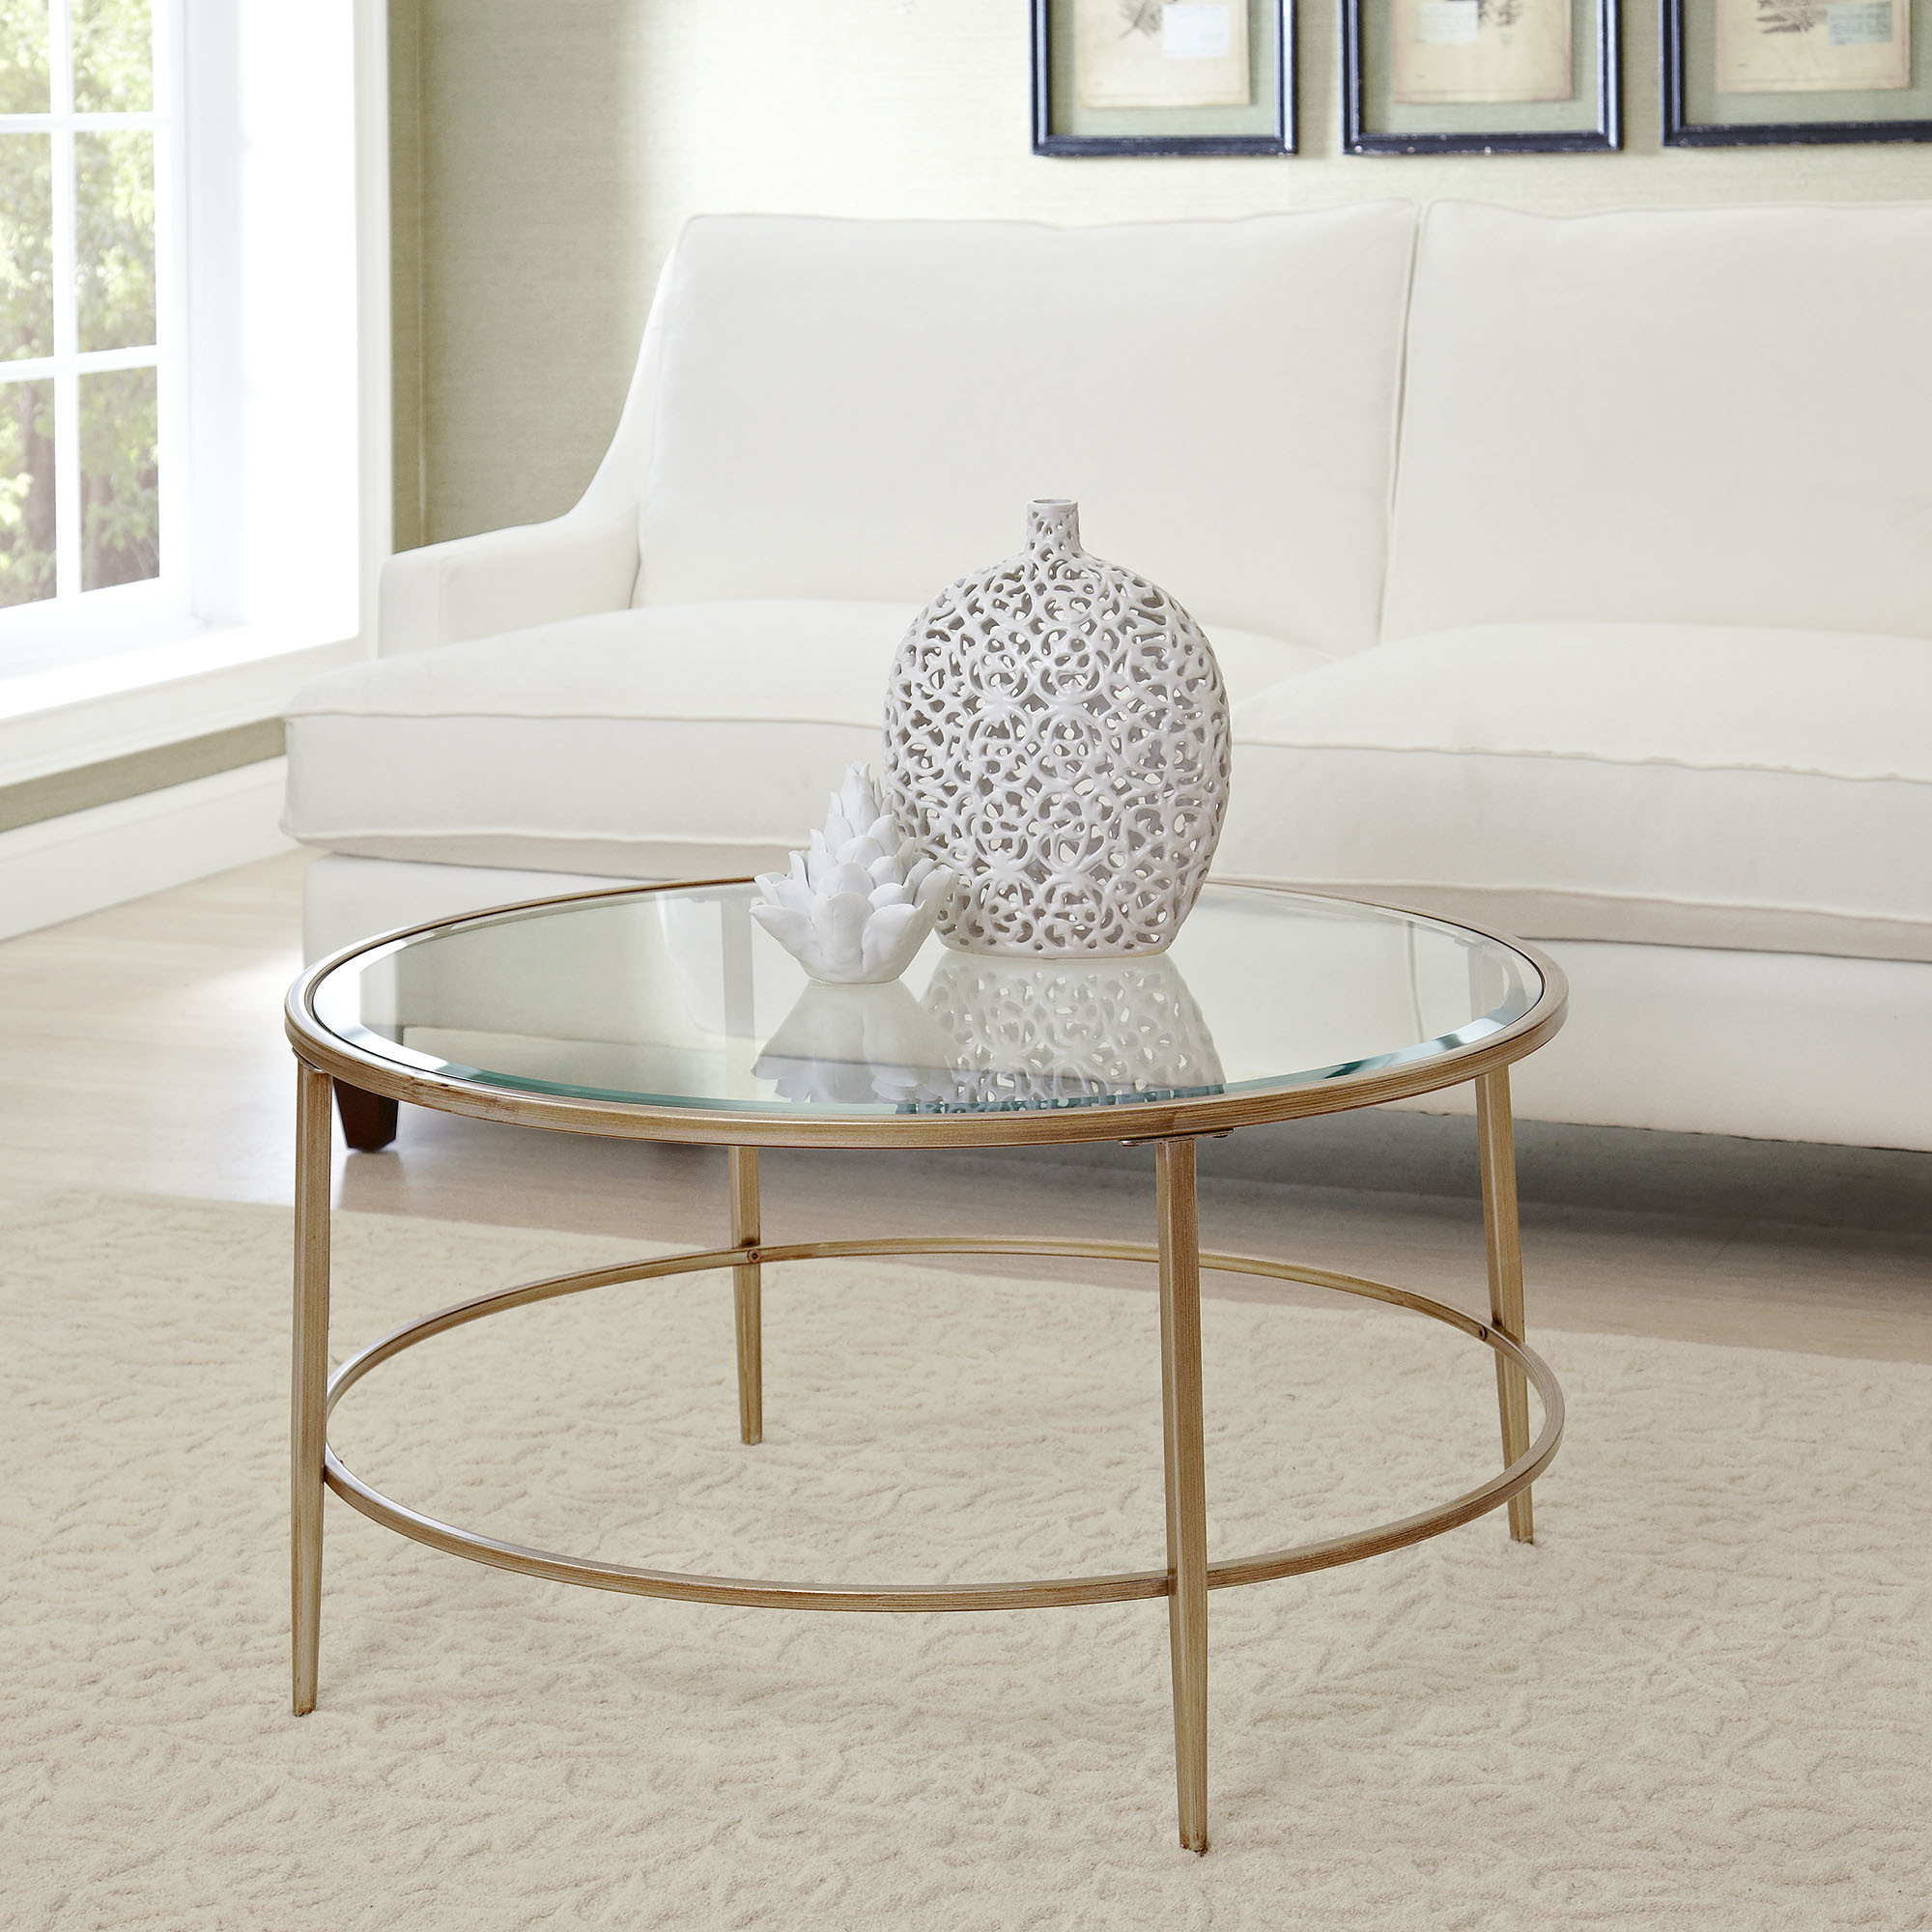 Most Recent Exciting Small Glass Coffee Table Style Design (View 18 of 20)